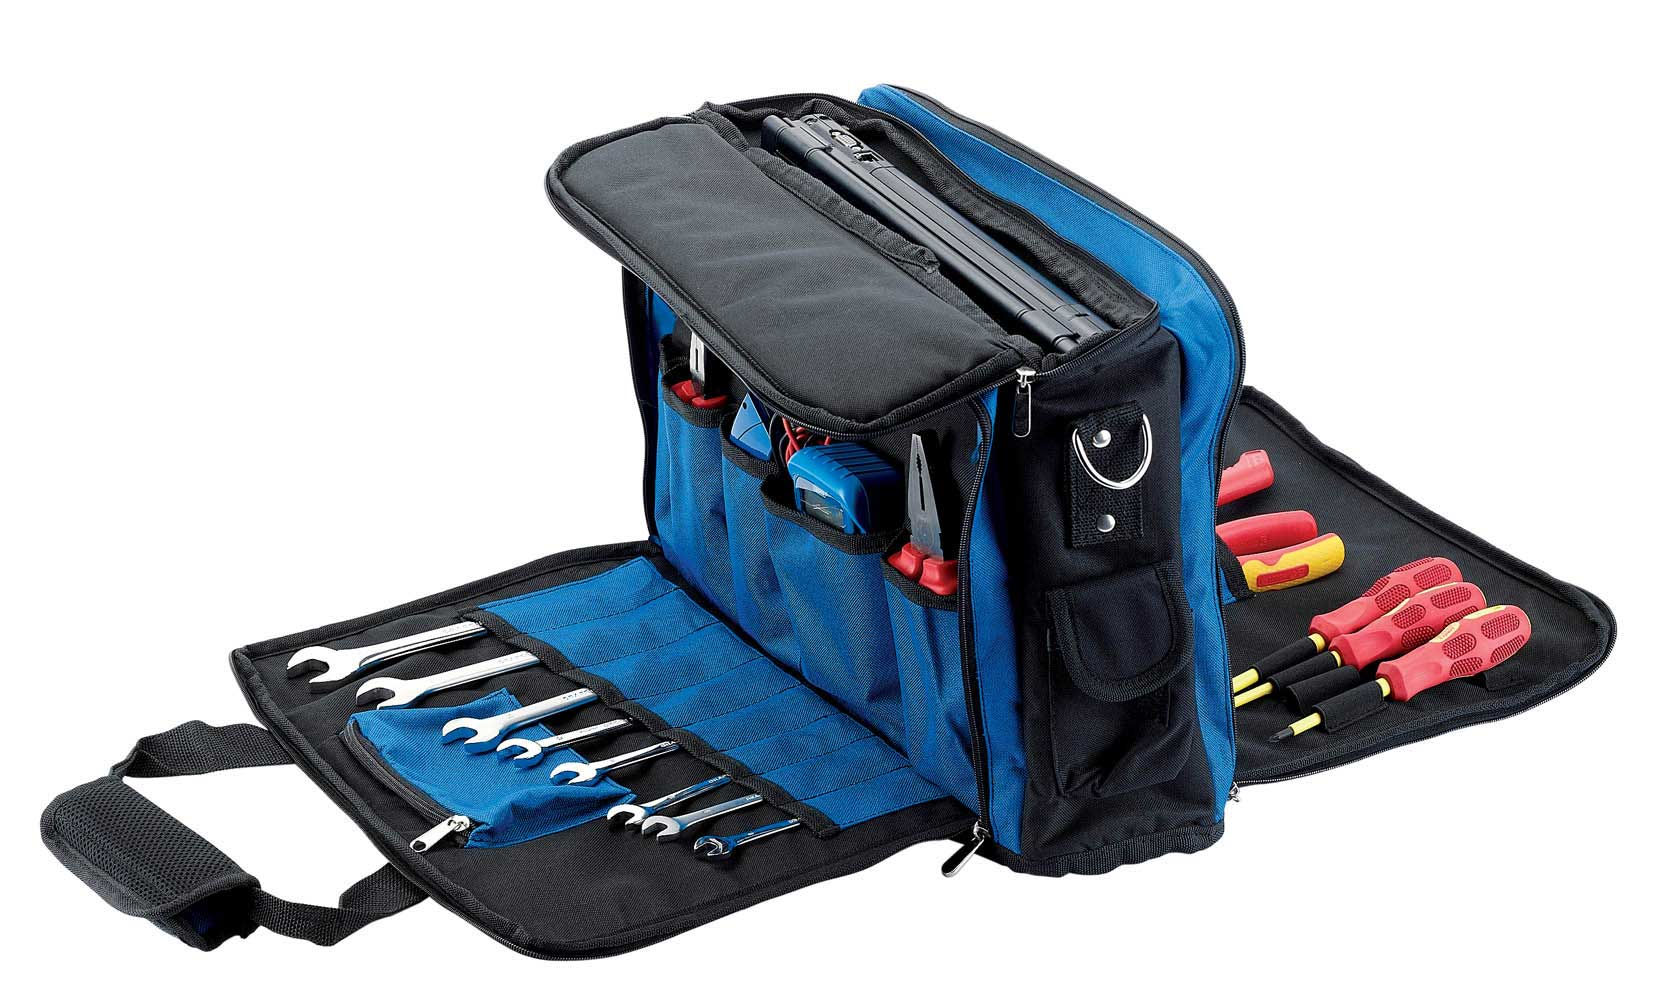 Draper 89209 Tbo Expert Quality Laptop And Tool Case